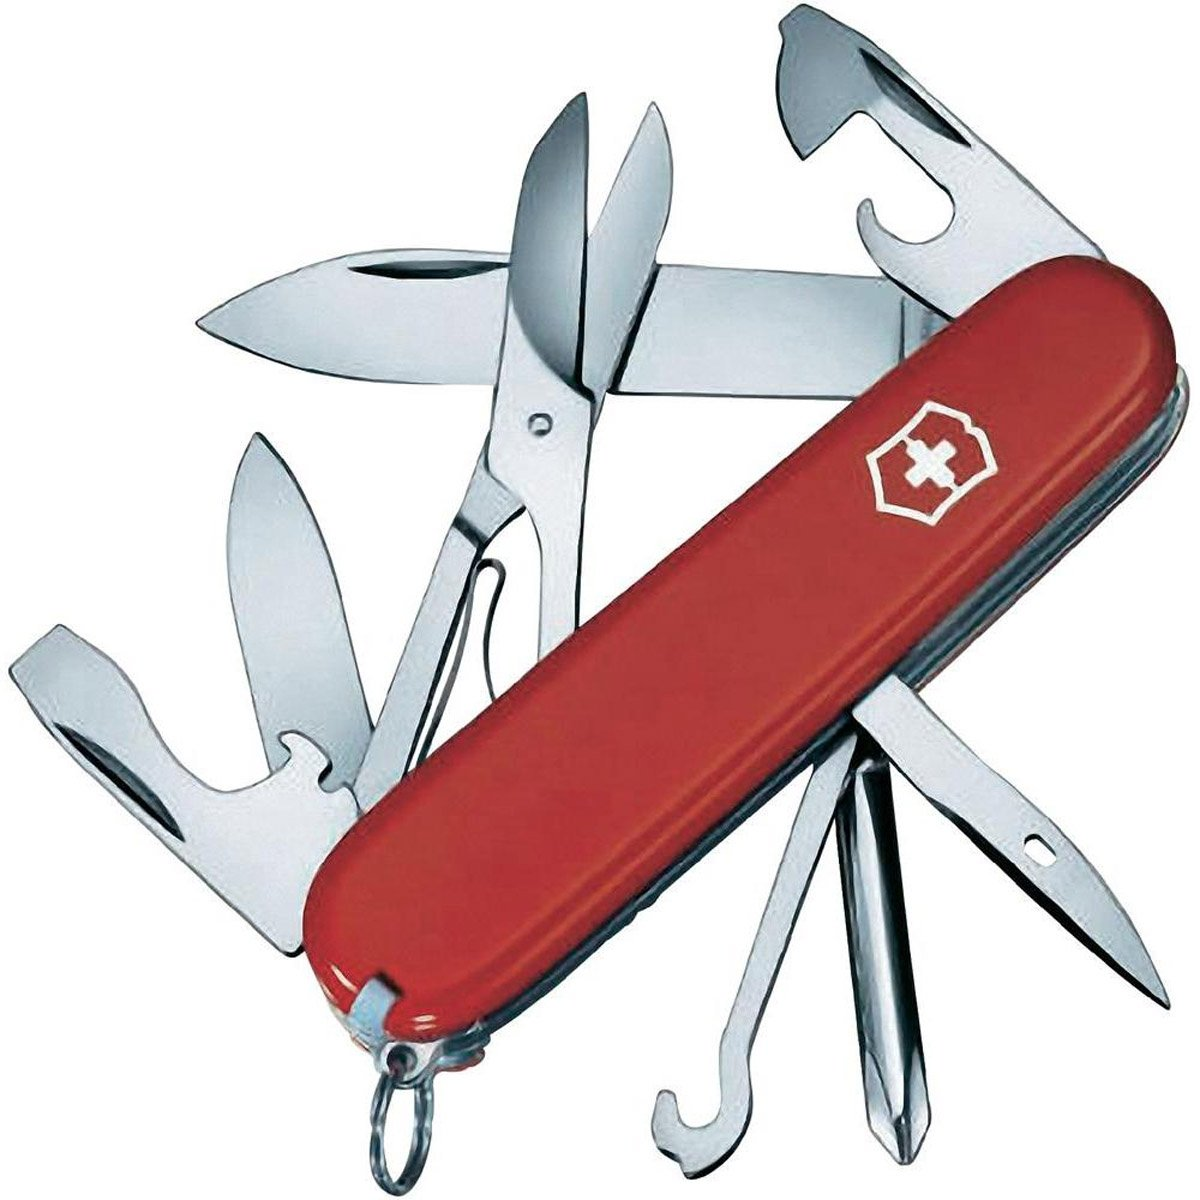 Victorinox Swiss Army Super Tinker Pocket Tool - Red by Victorinox